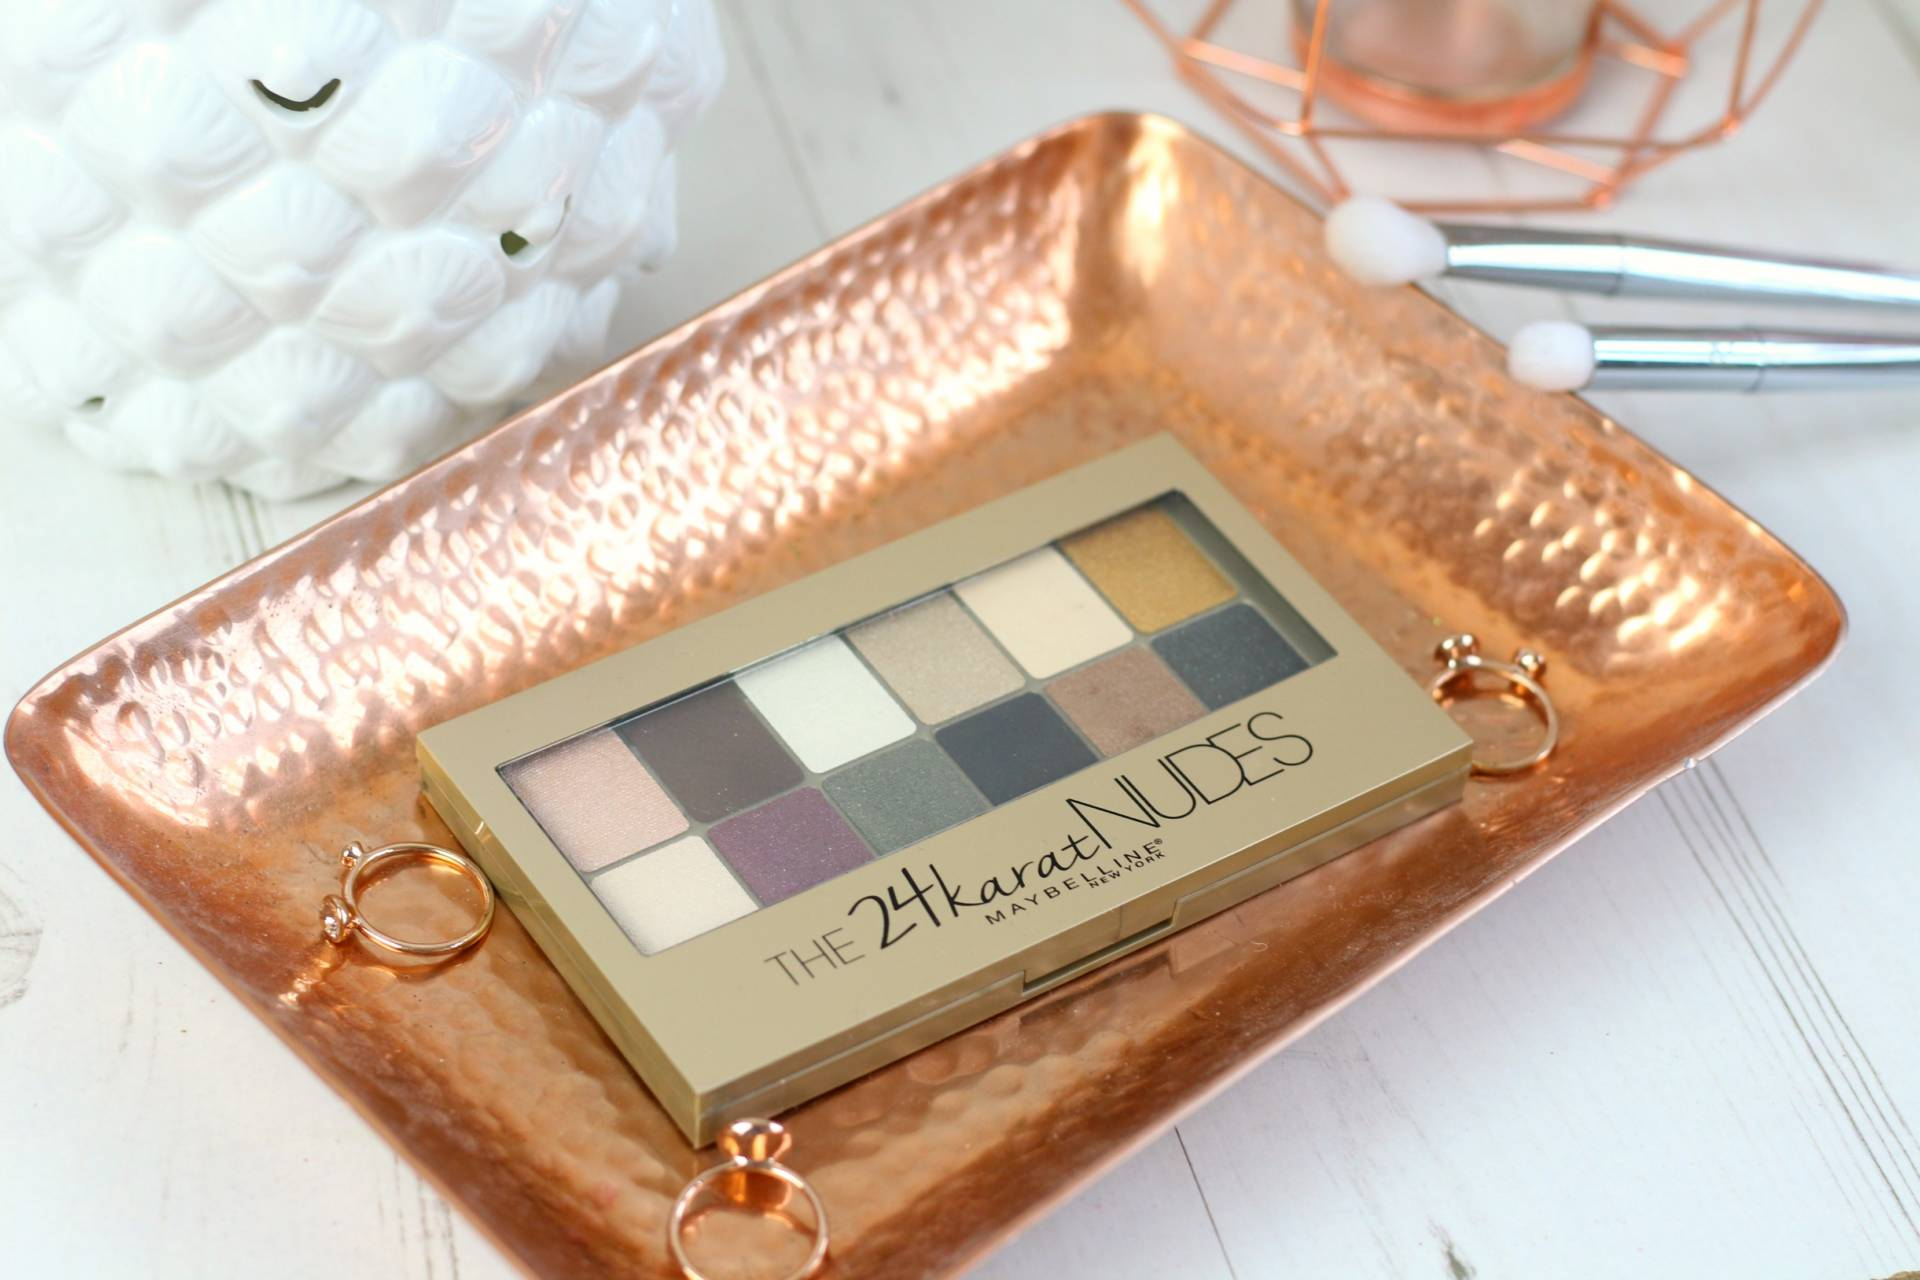 Introducing the Maybelline 24K Nudes Palette